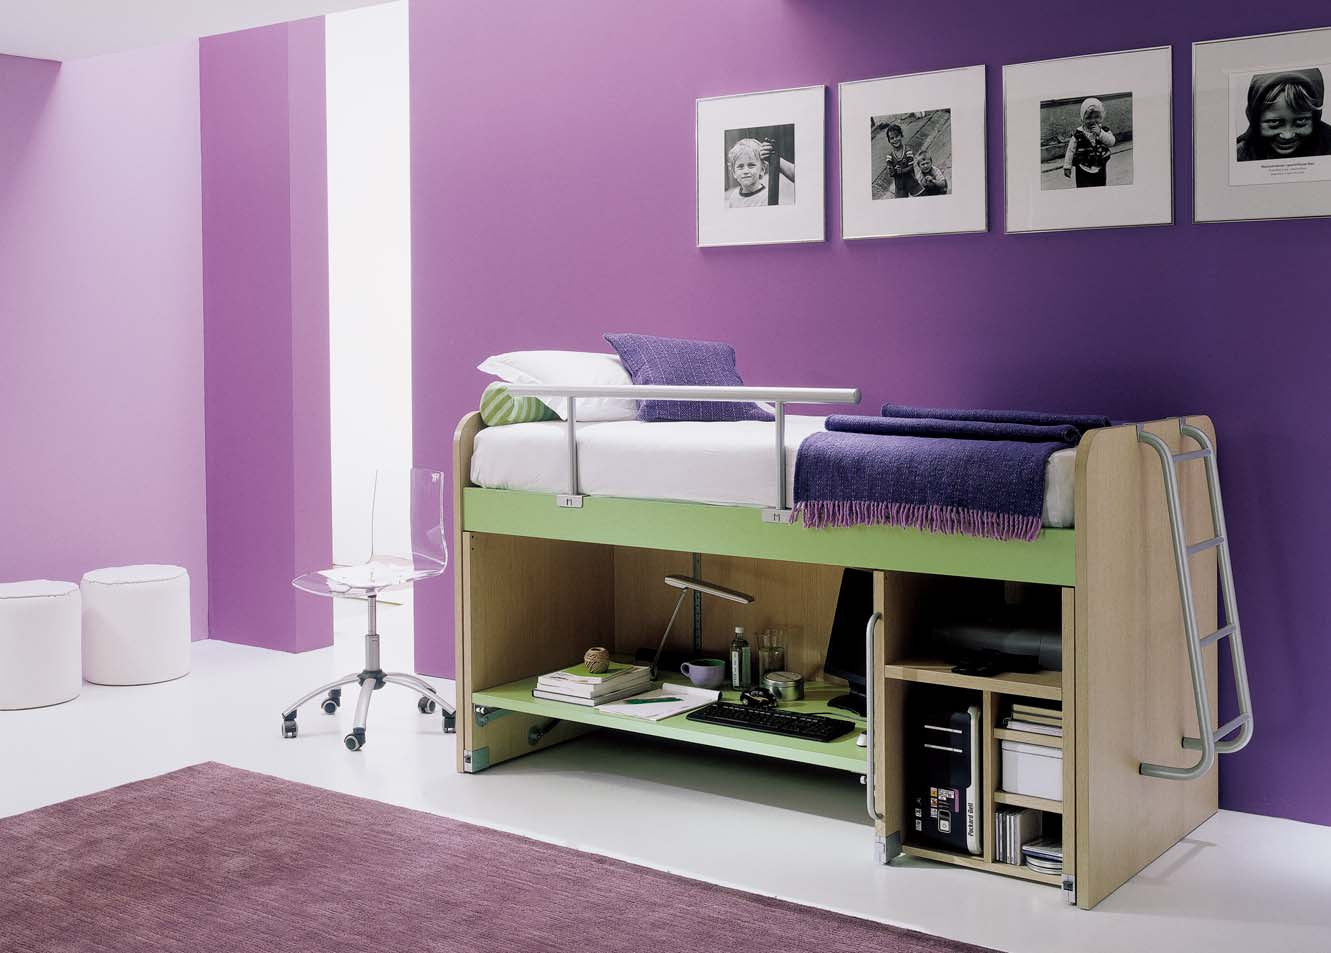 Violet bedroom color ideas - Teen Purple Bedroom Color Idea With Target Frame On The Wall With Acrylic Swivel Cair And